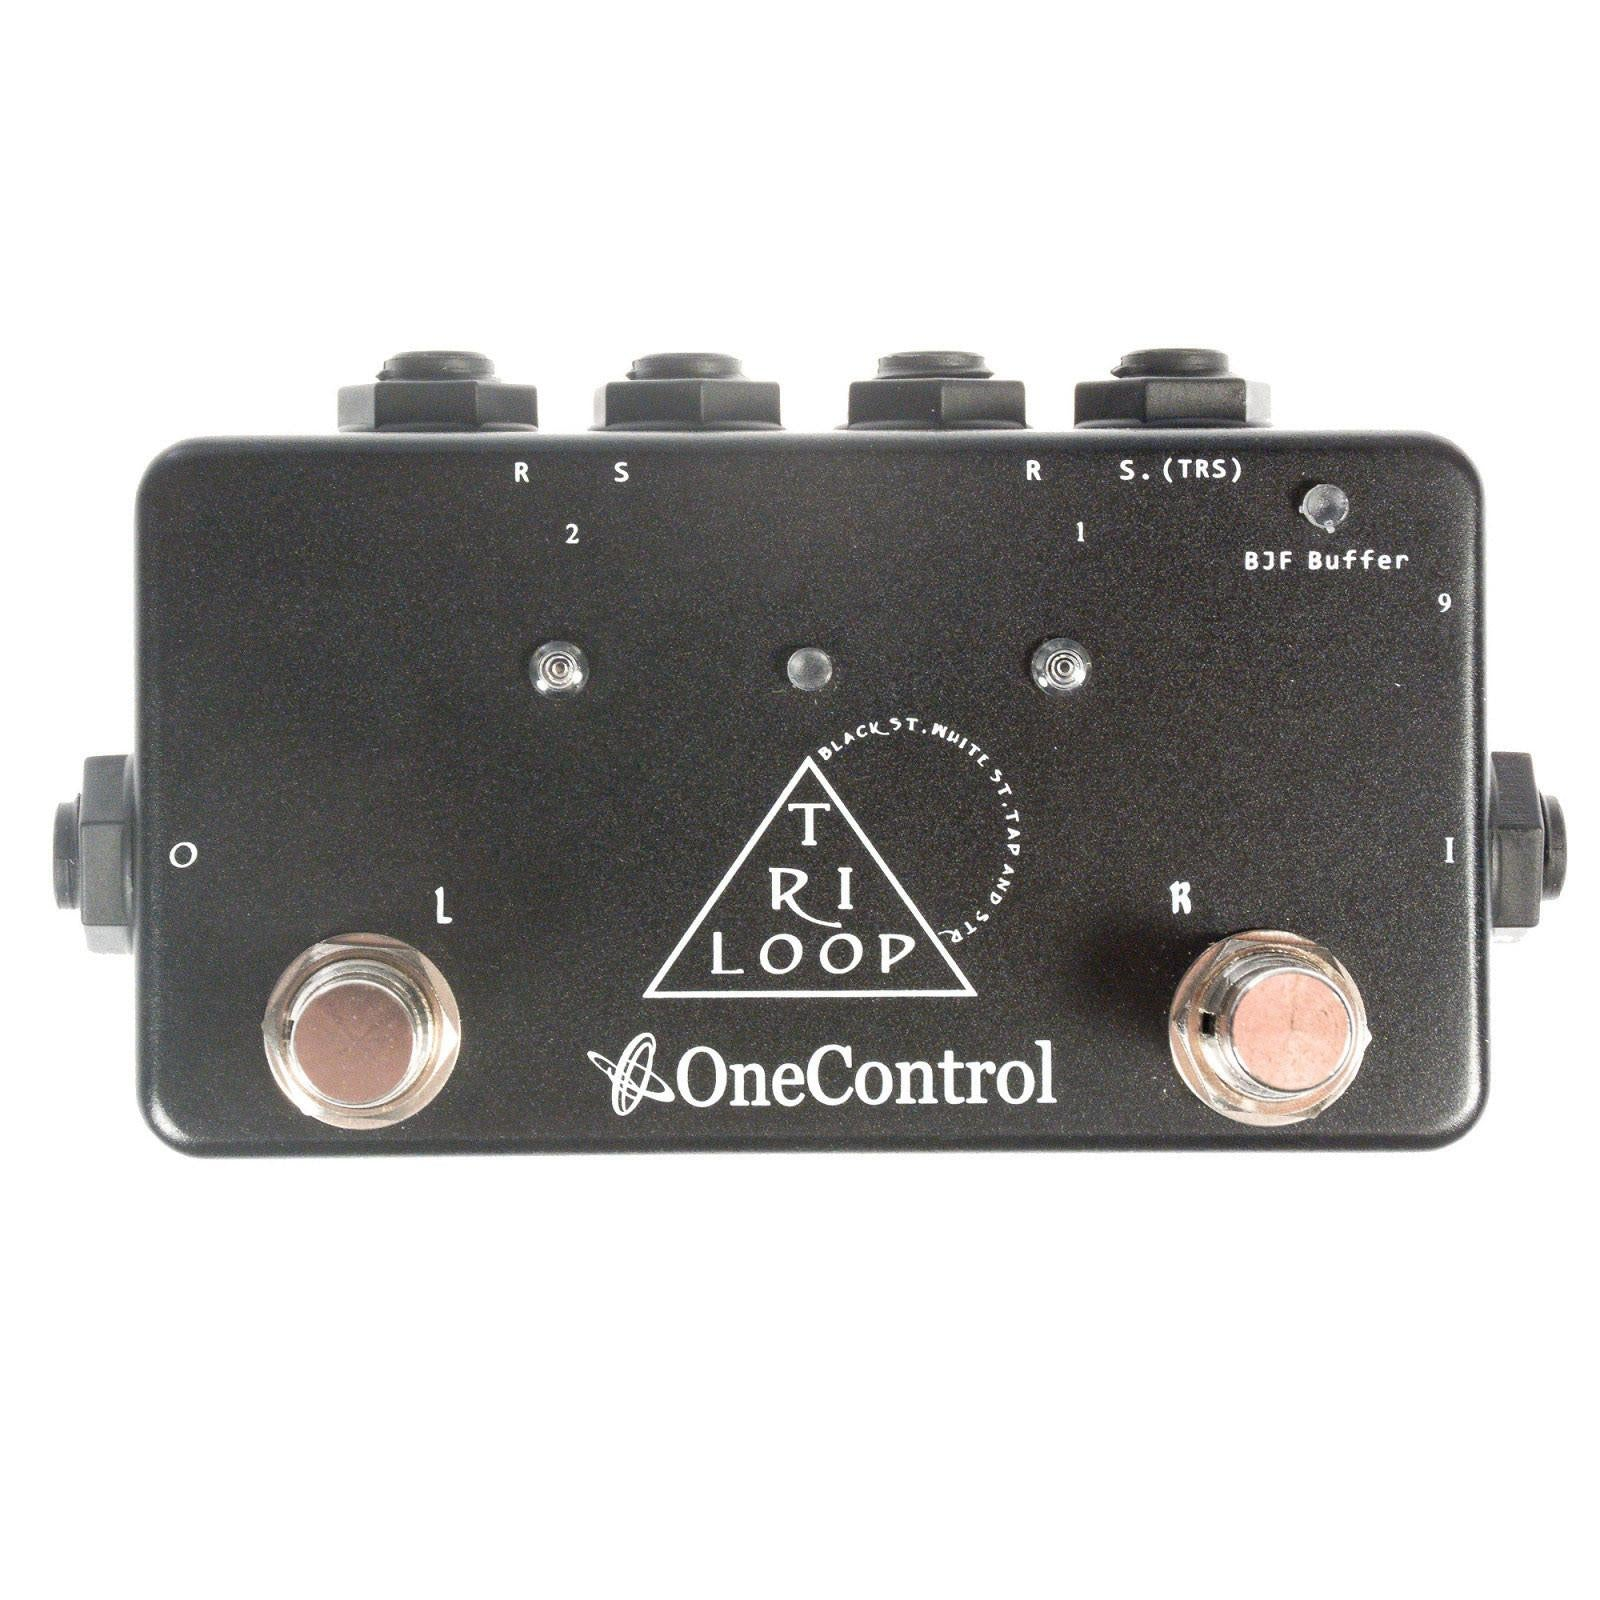 ONE CONTROL TRI-LOOP MULTI-PURPOSE TRUE BYPASS LOOPER